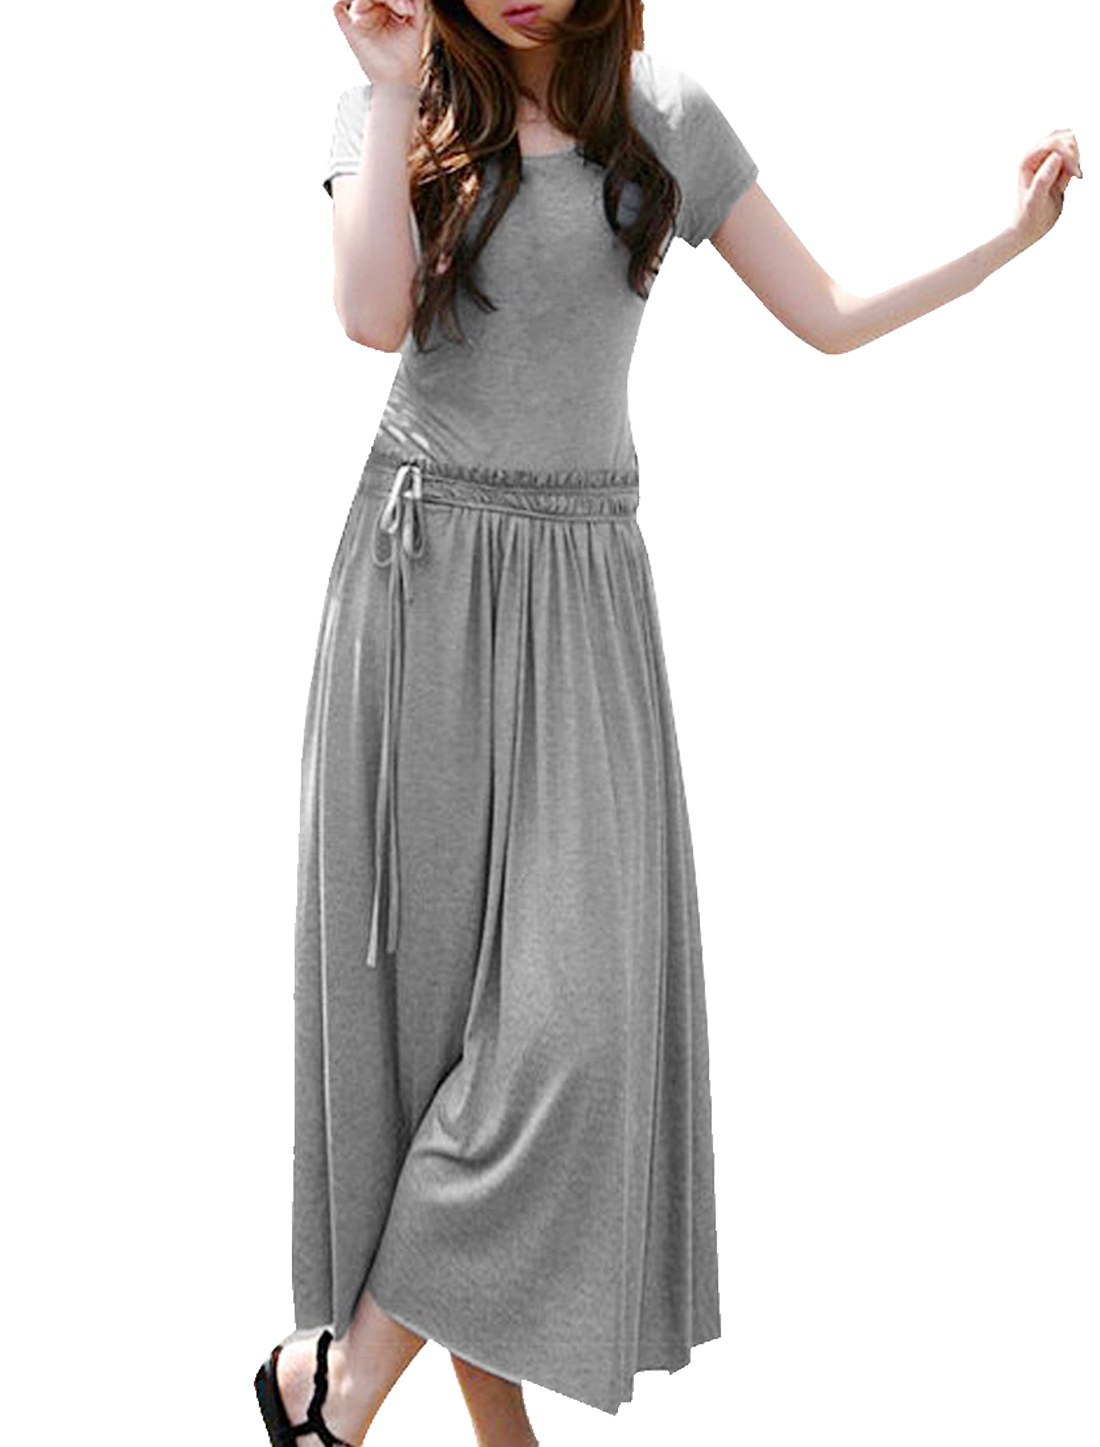 Woman Drawstring Waist Short Sleeve Full-length Dress Heather Gray L